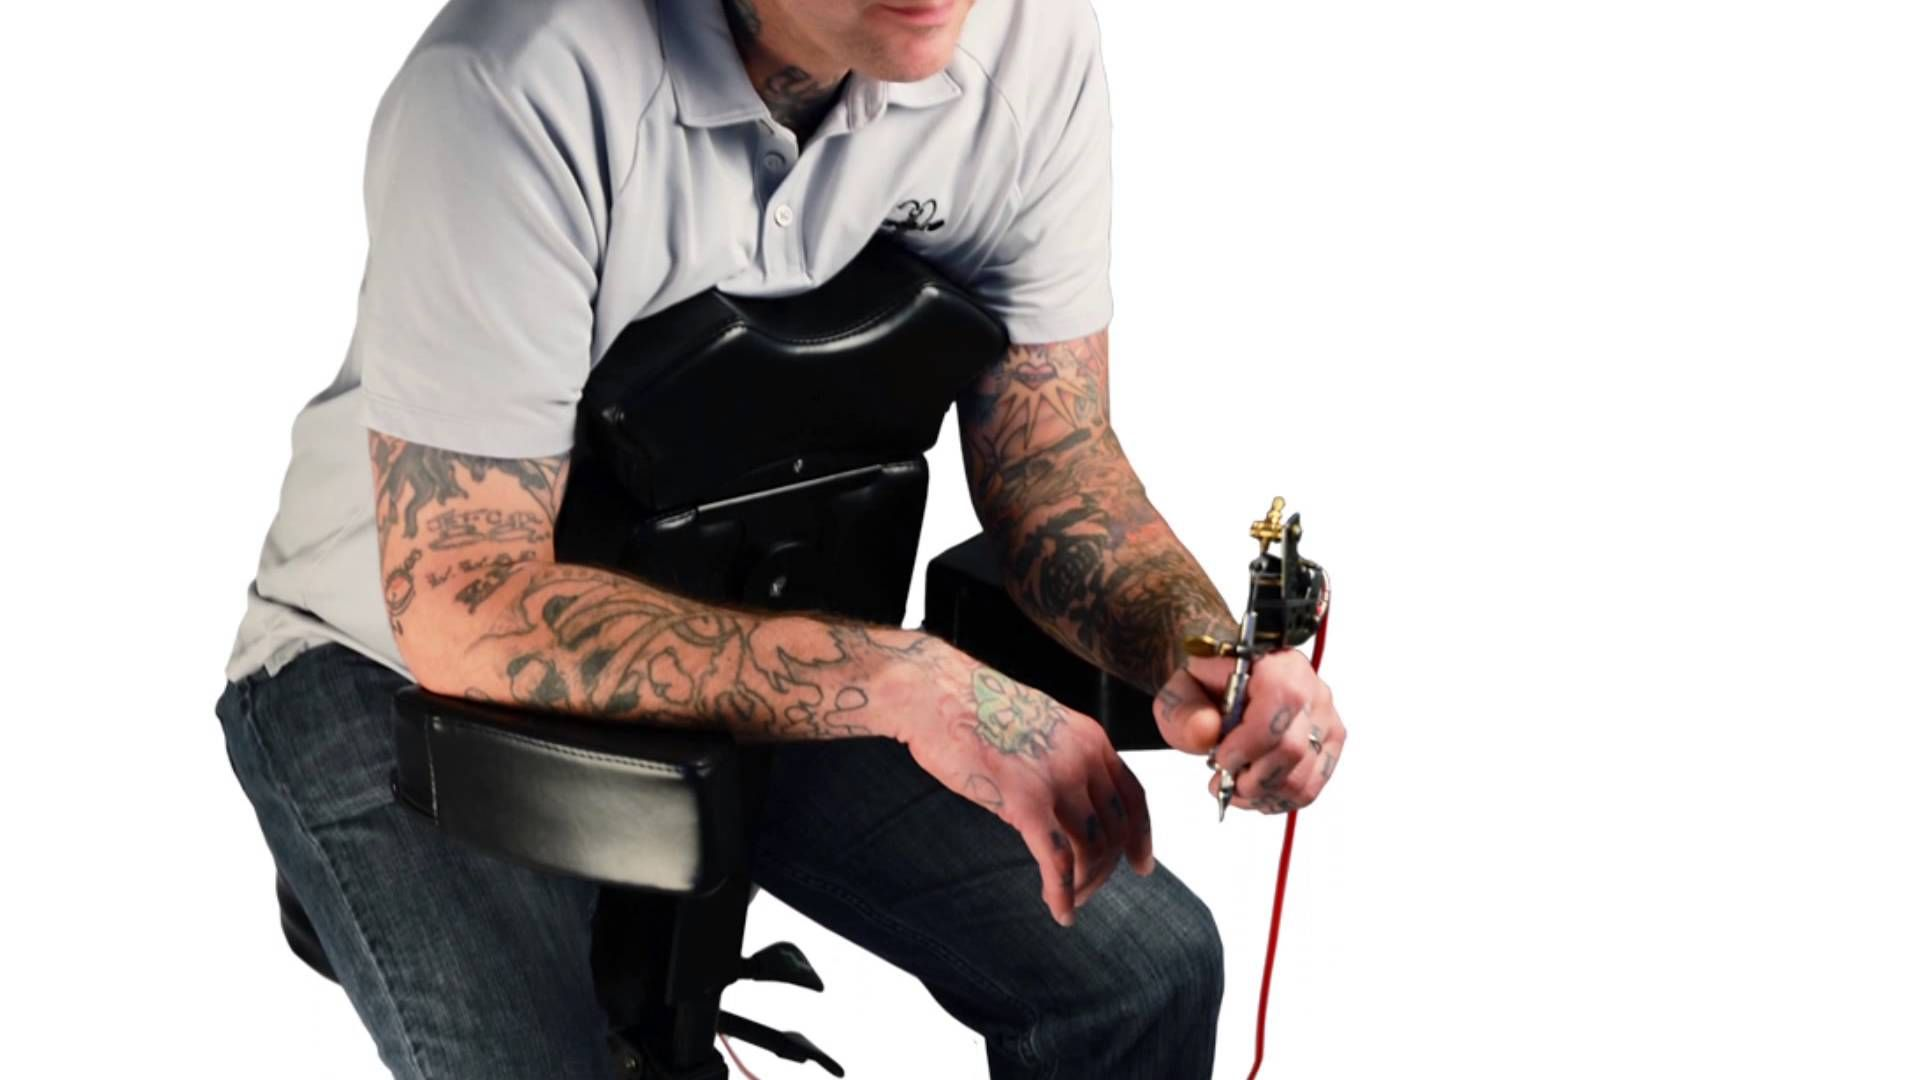 Introducing inkstool for tattoo artists by tattoo